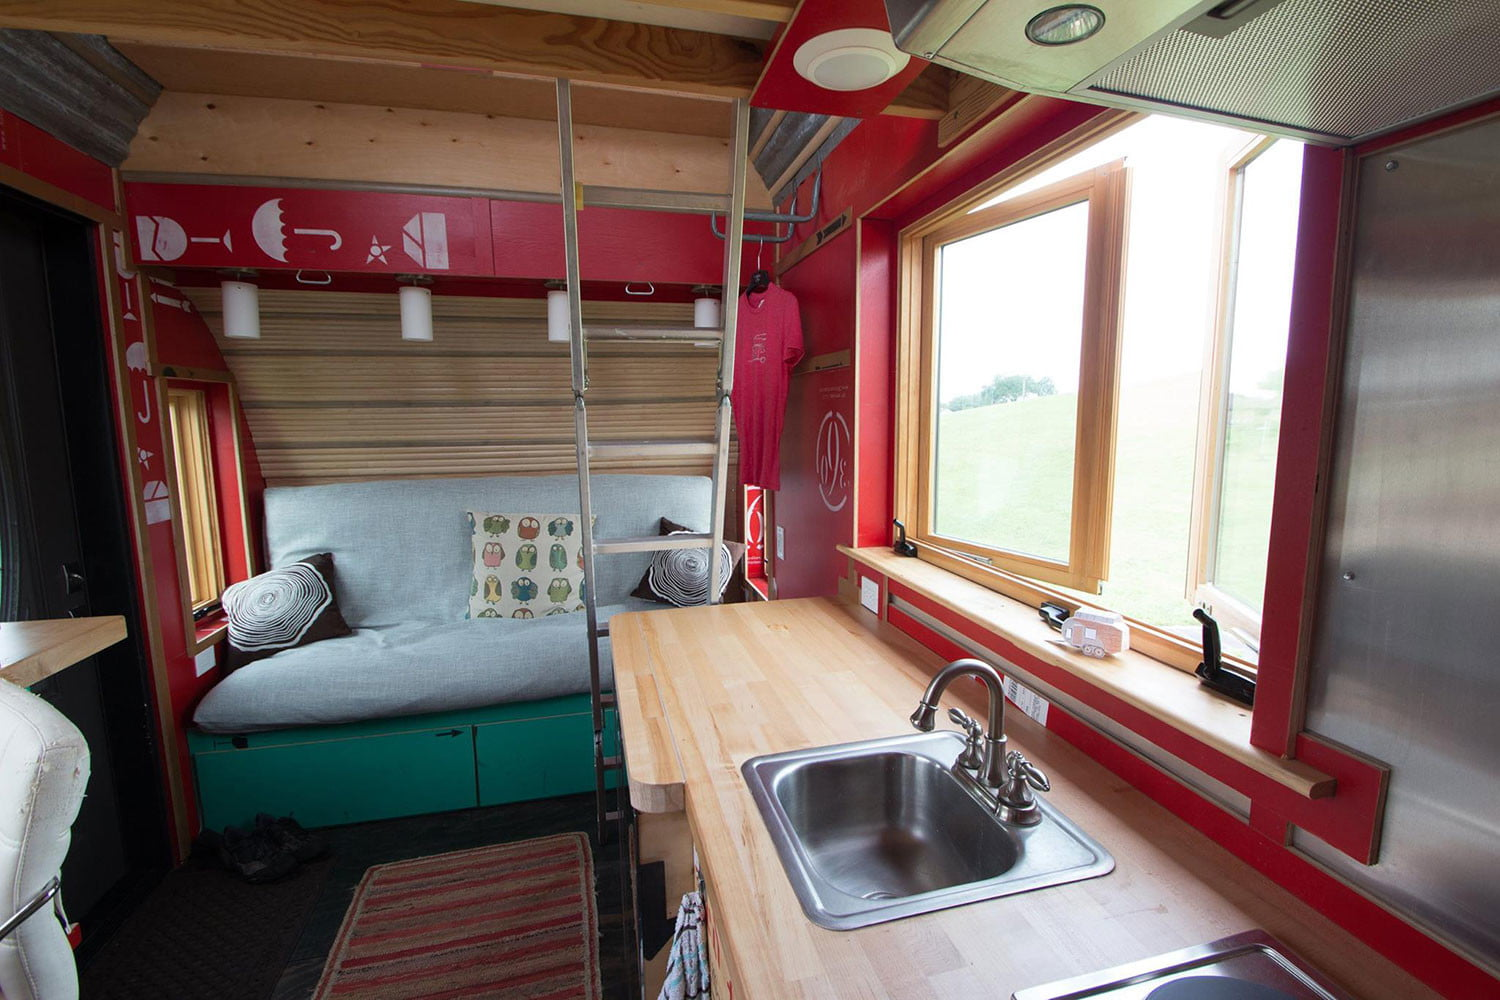 tiny drop home on wheels tend building 007